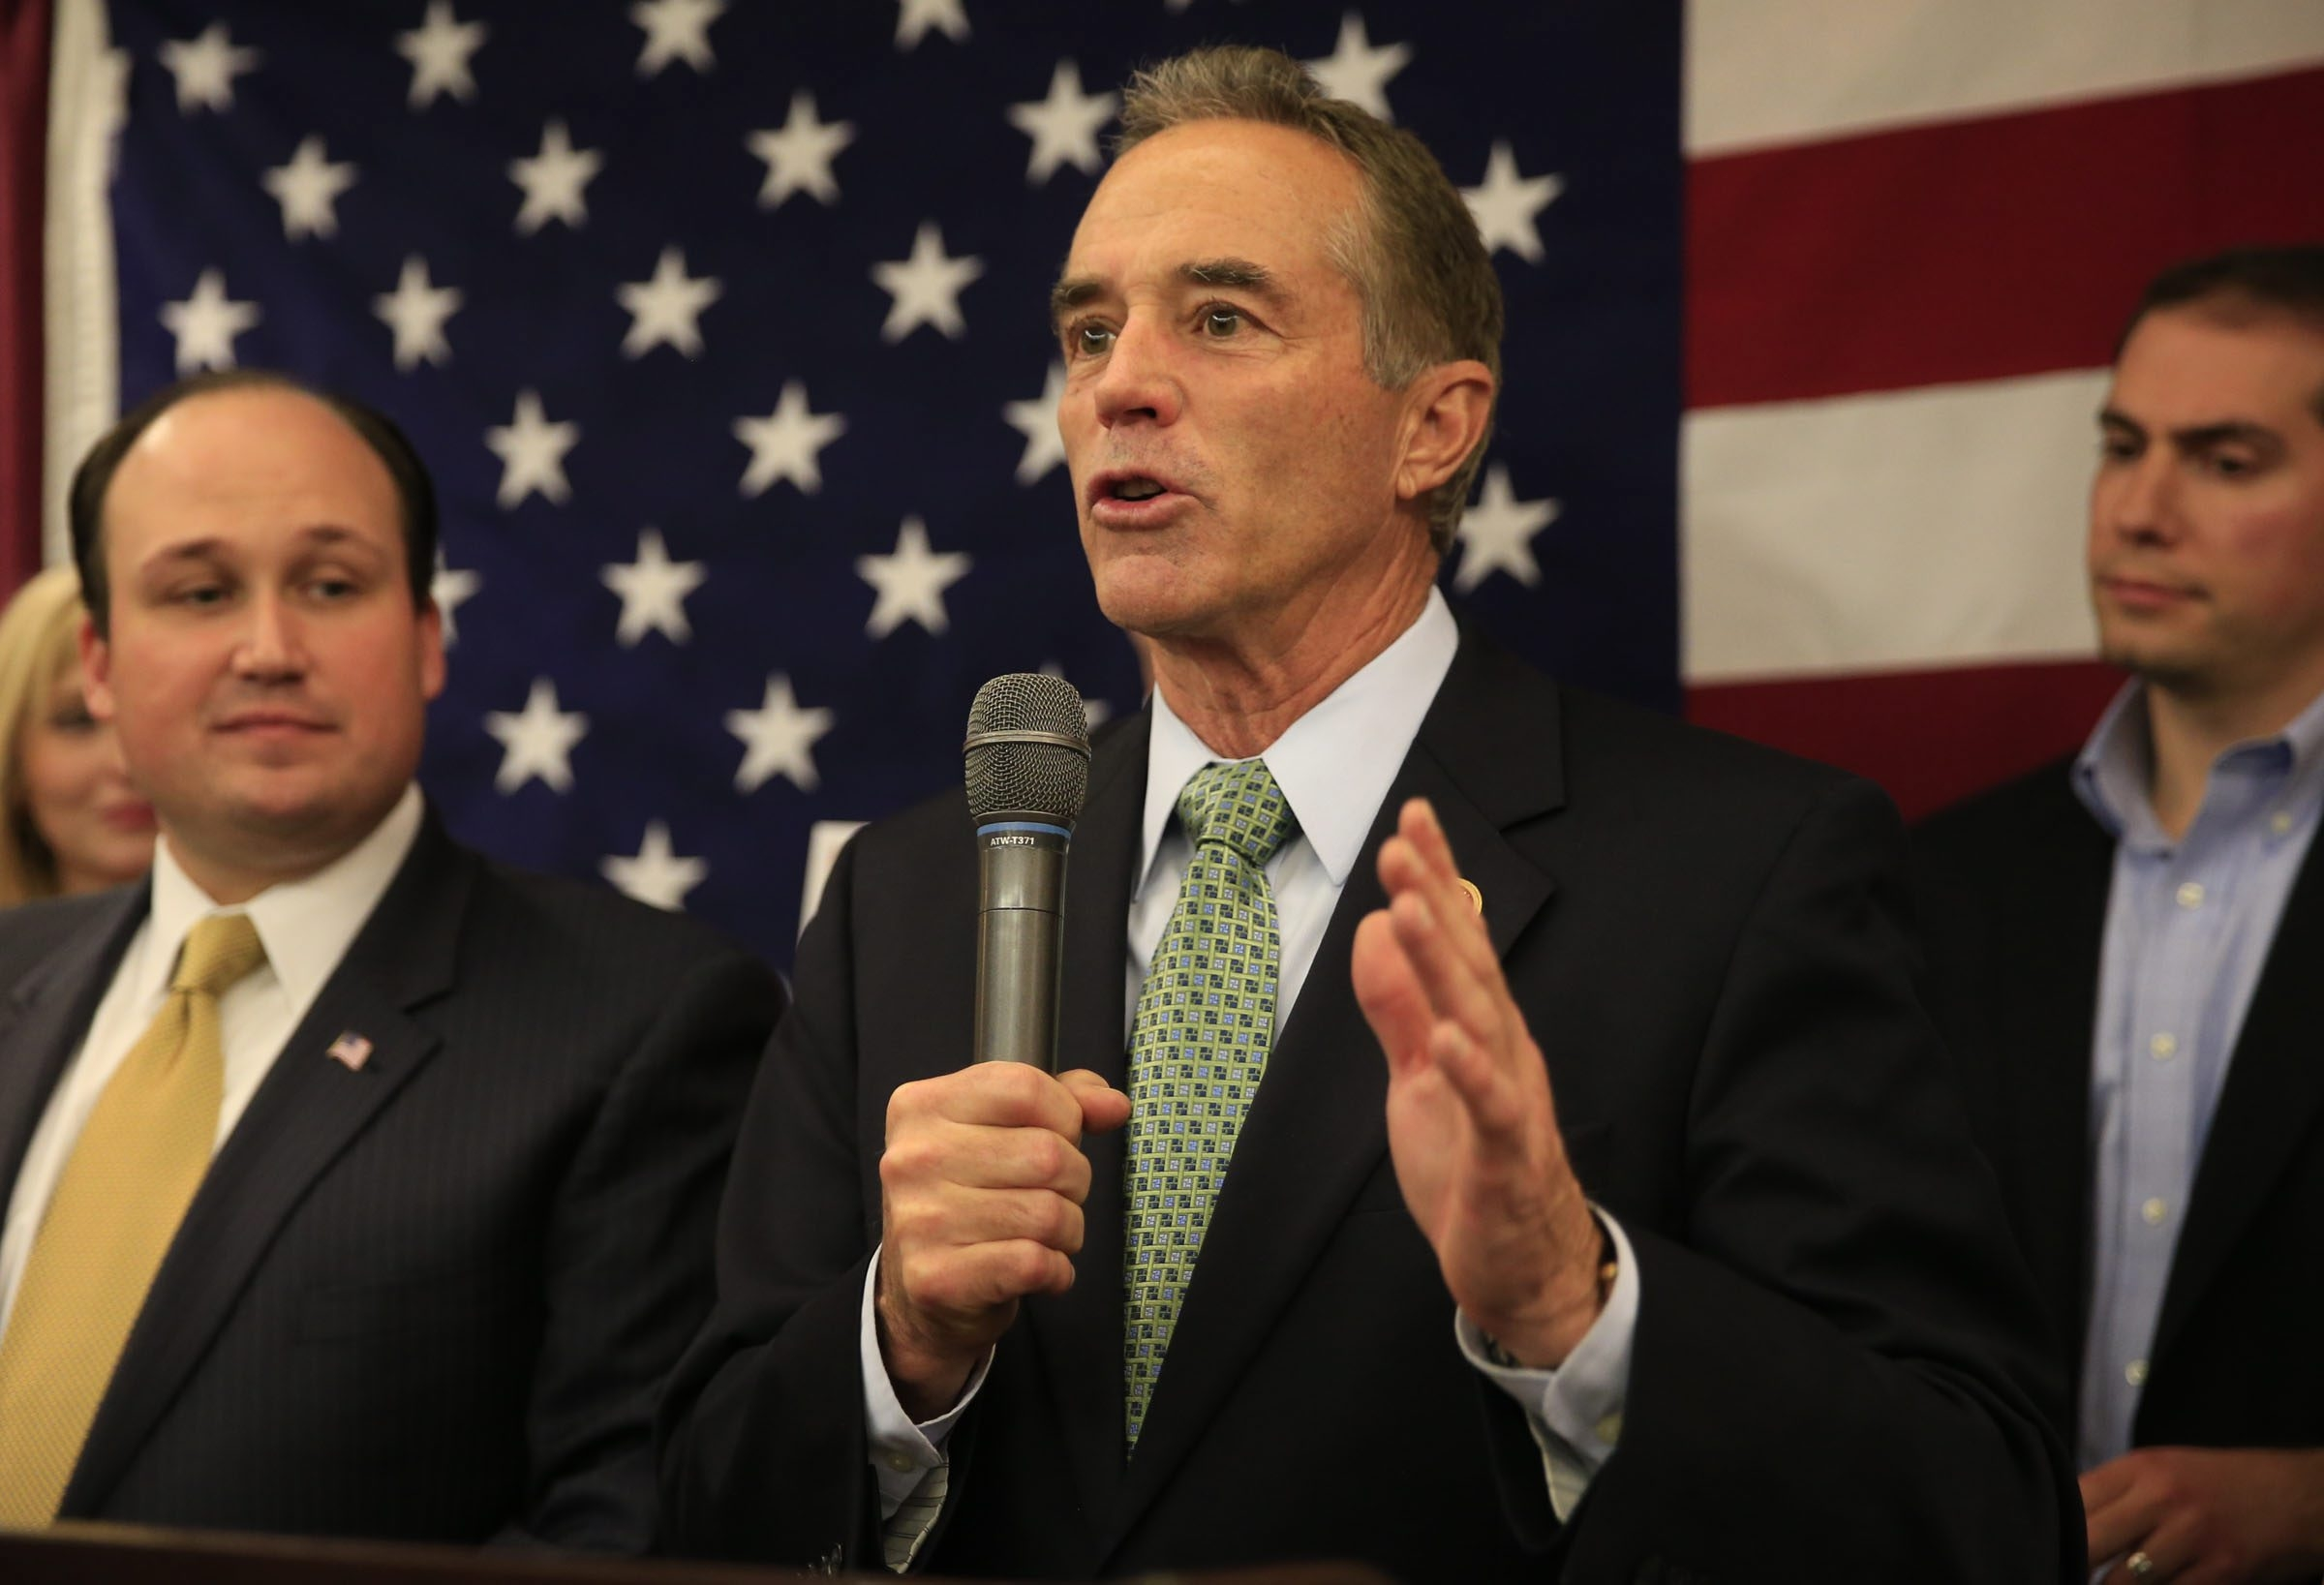 Rep. Chris Collins blasts currency manipulation by China as job killer for U.S.